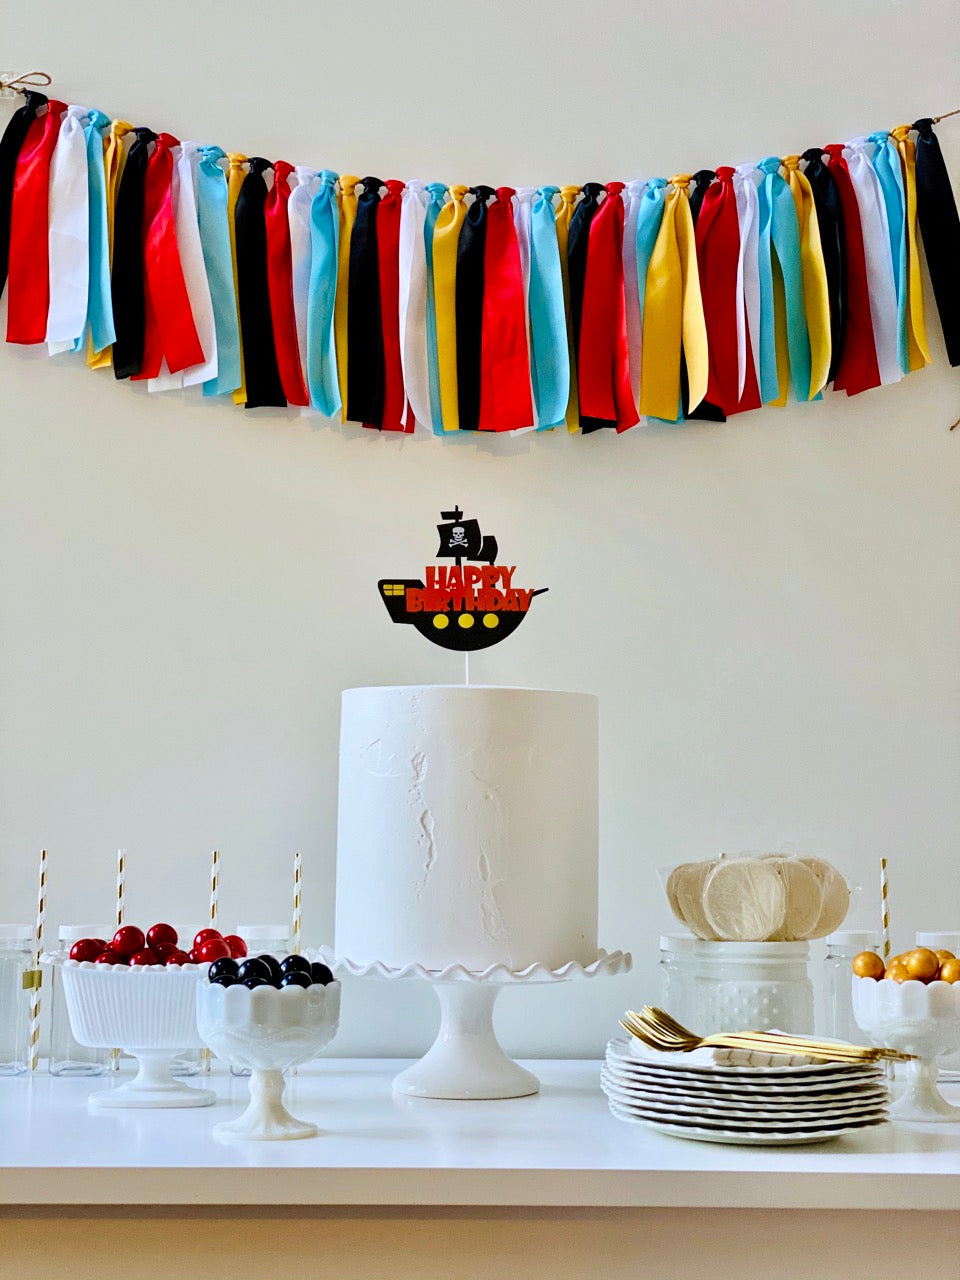 Pirate Ribbon Bunting - FREE Shipping